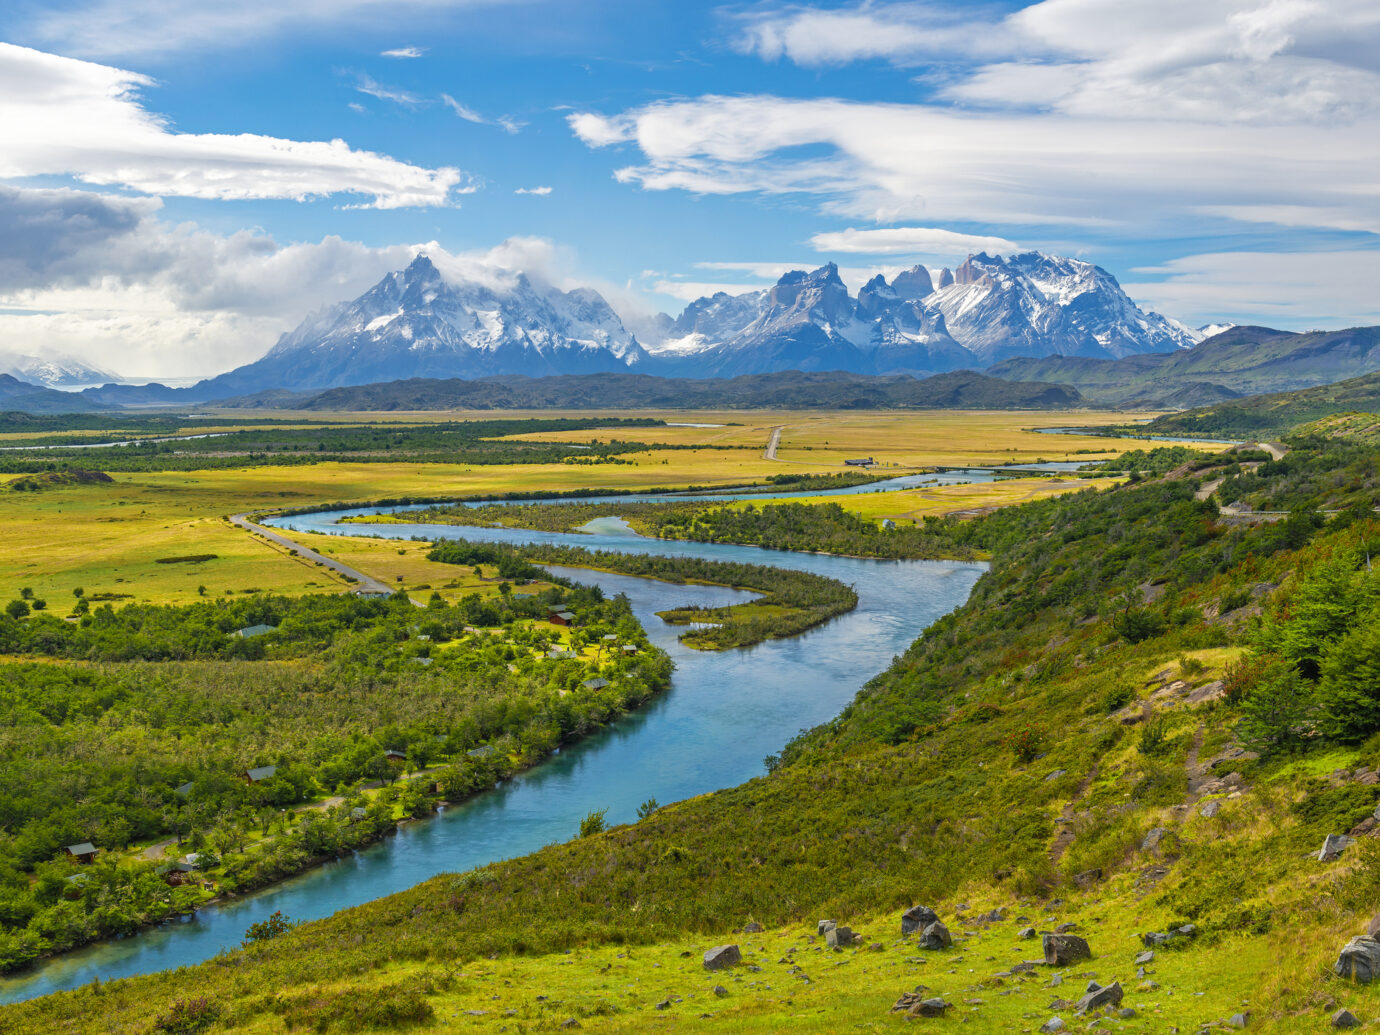 The Andes peaks of Paine Grande, Cuernos del Paine and Torres del Paine on a summer day